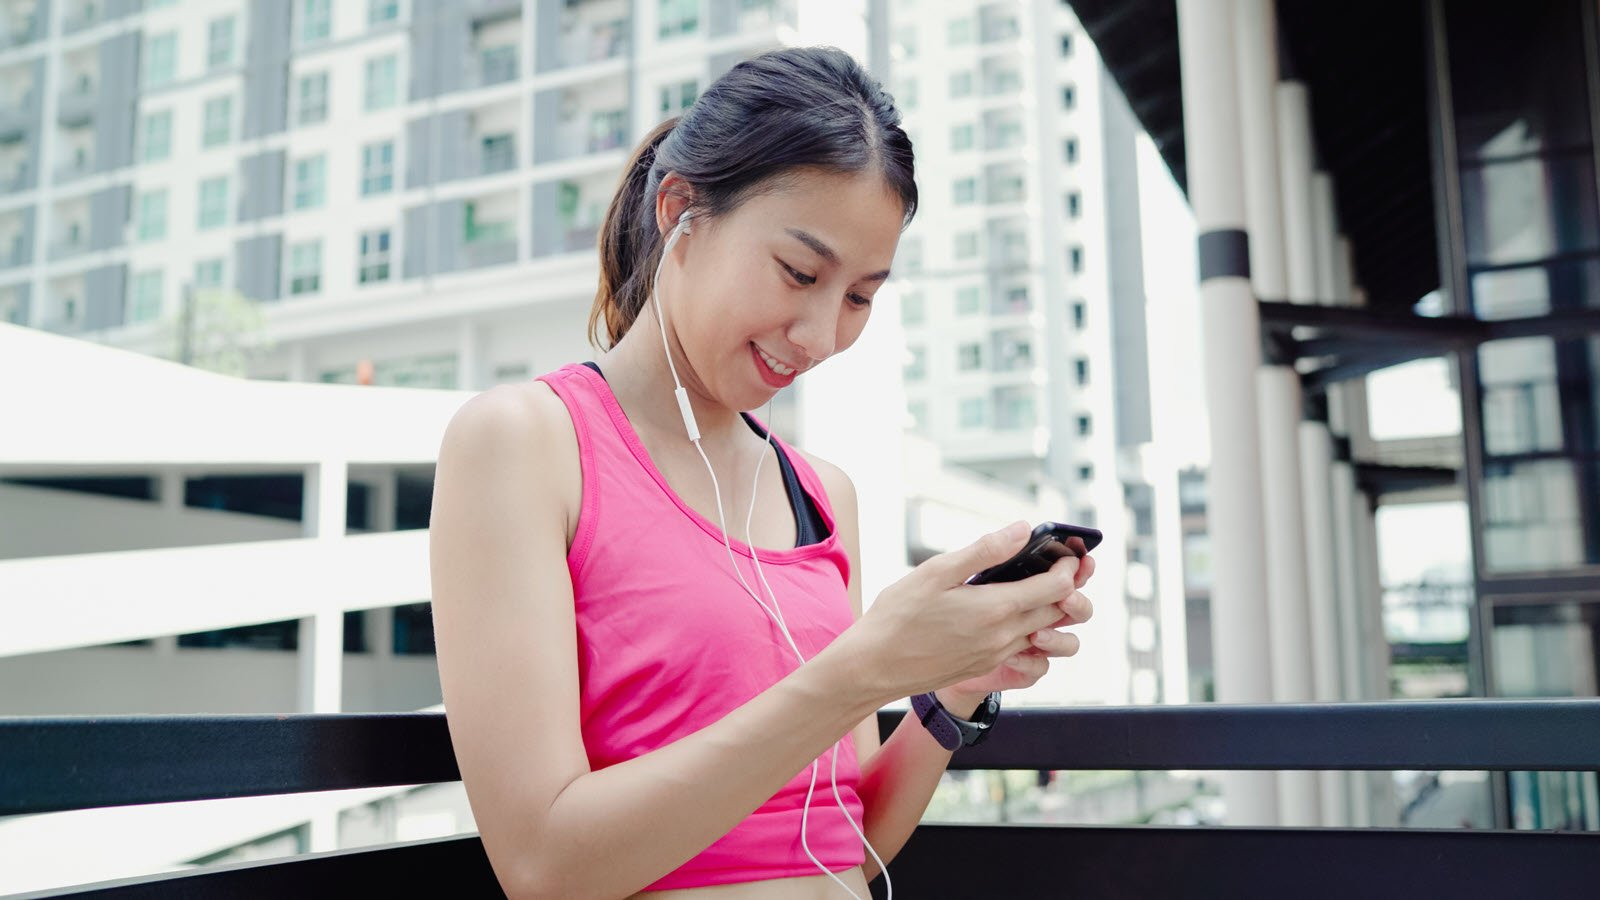 MP3 Players Concentration Focus